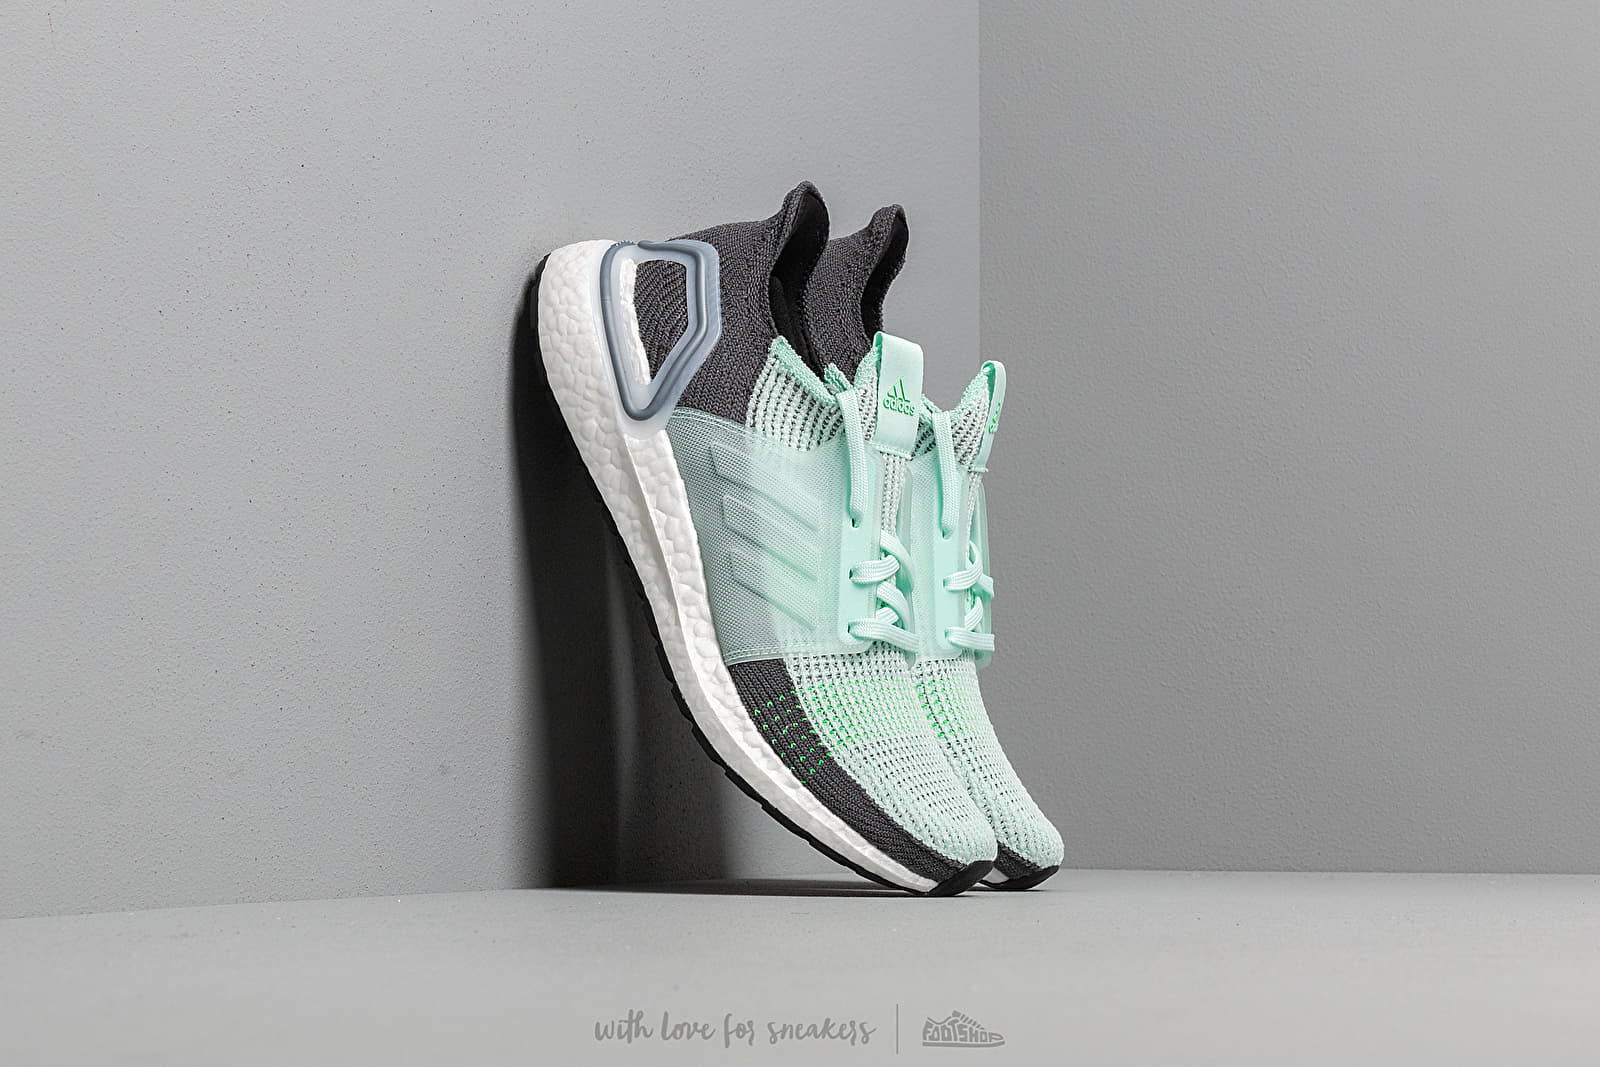 df3e2b328324f adidas UltraBOOST 19 Ice Mint  Ice Mint  Grey Six at a great price  206